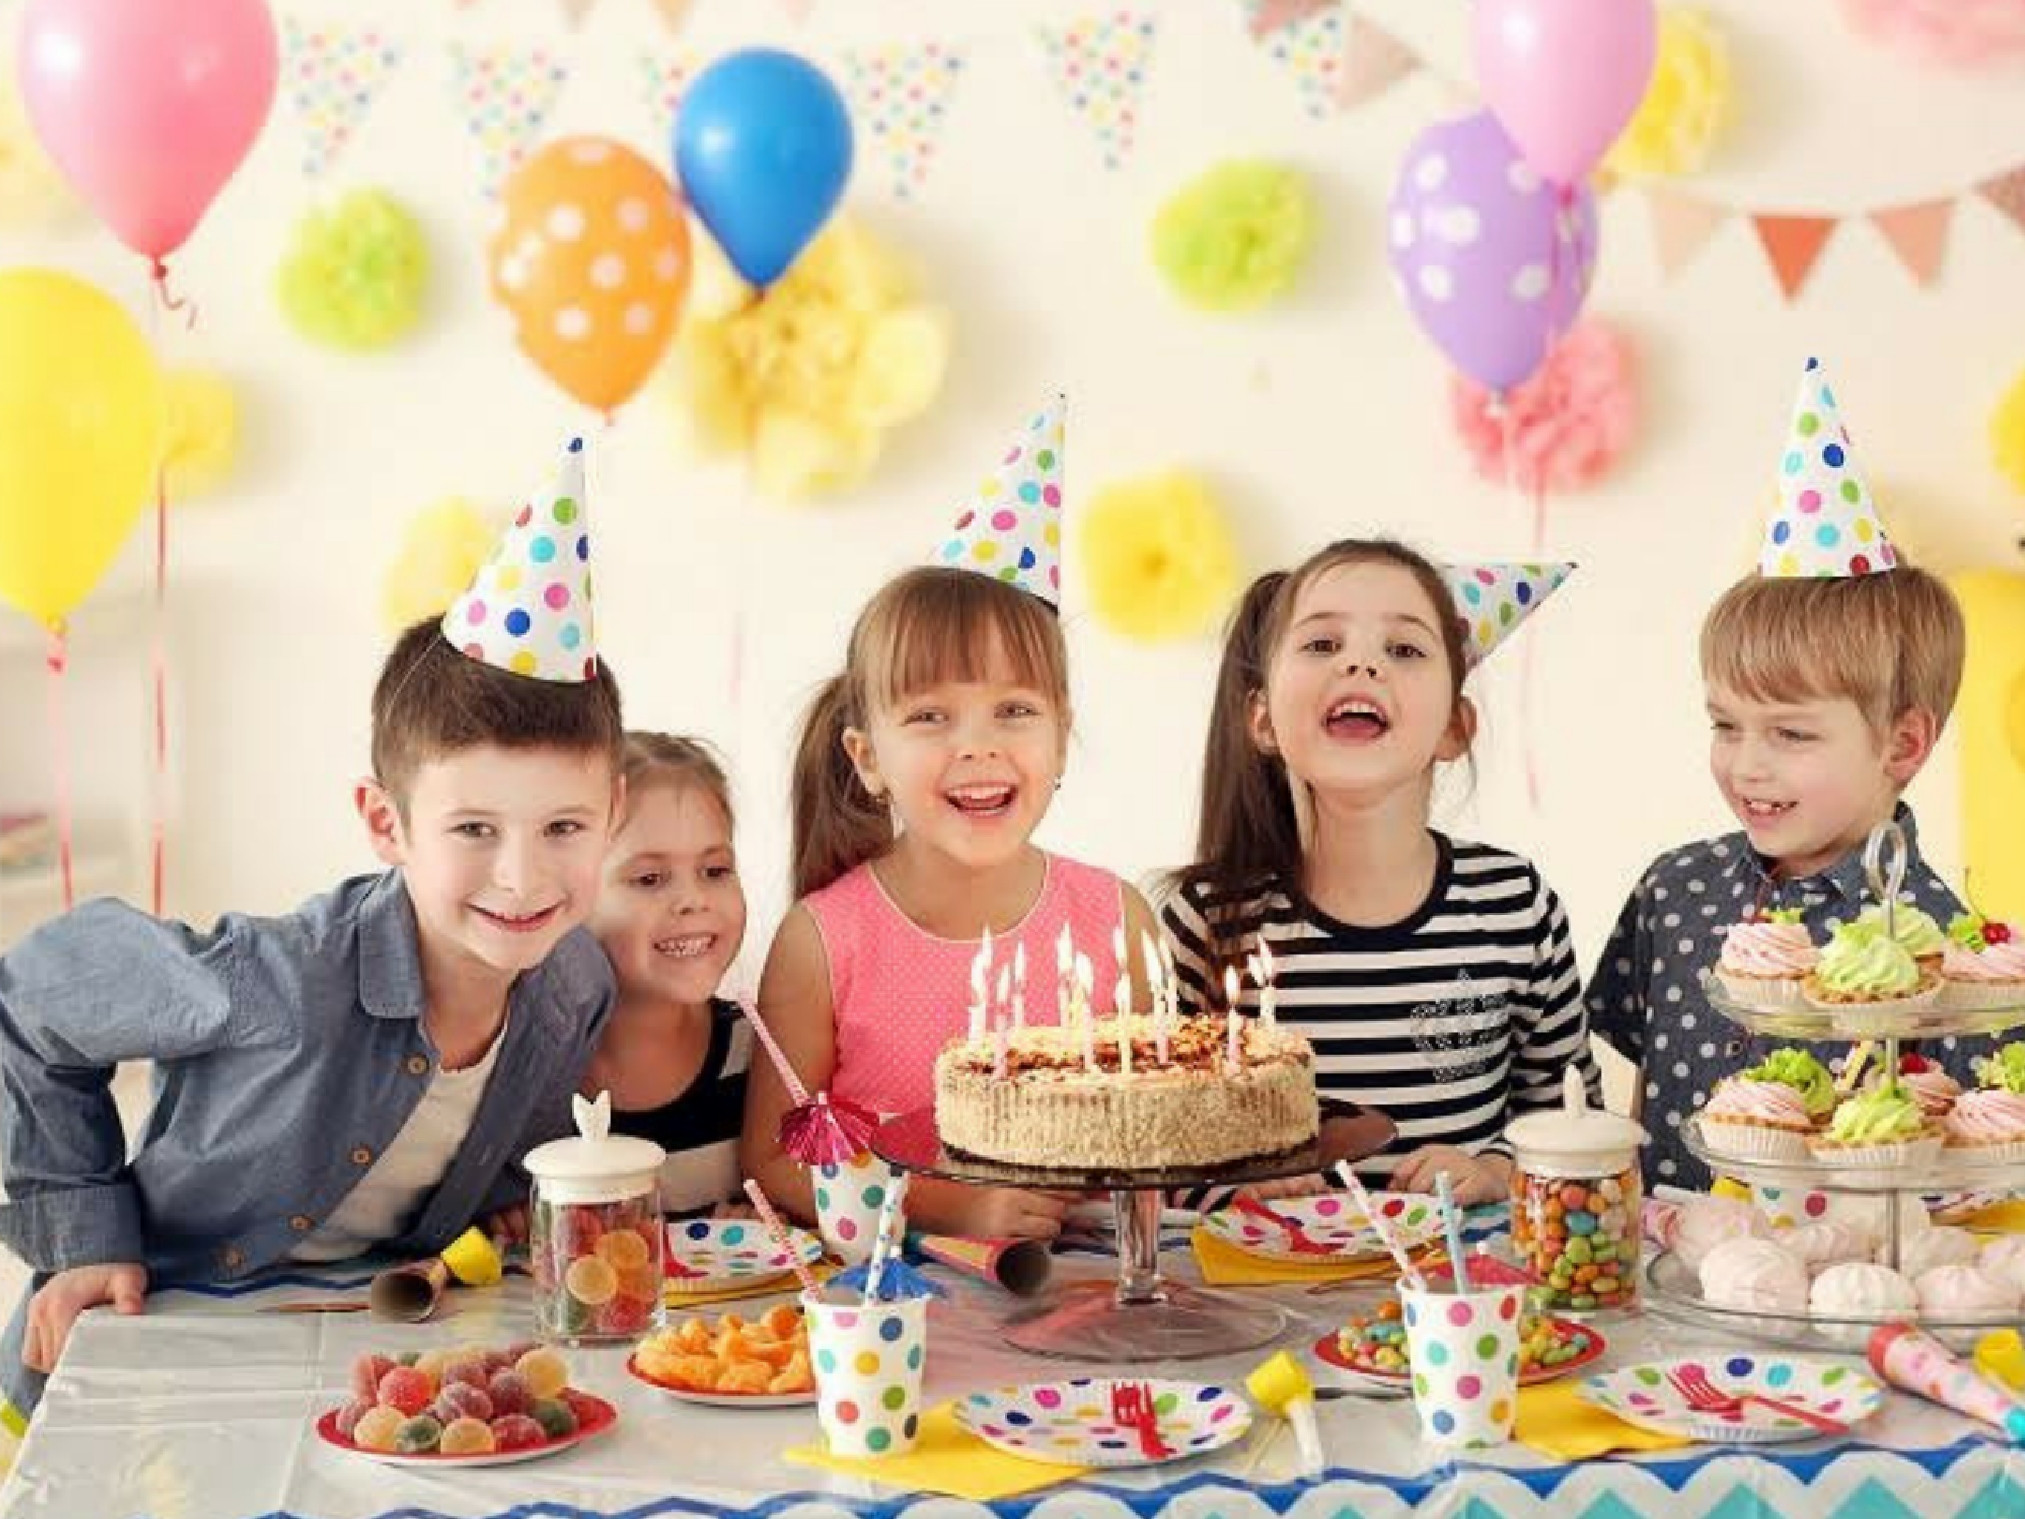 Kids Birthday Party Location Ideas  How to Throw a Memorable Birthday Party for Your Kid